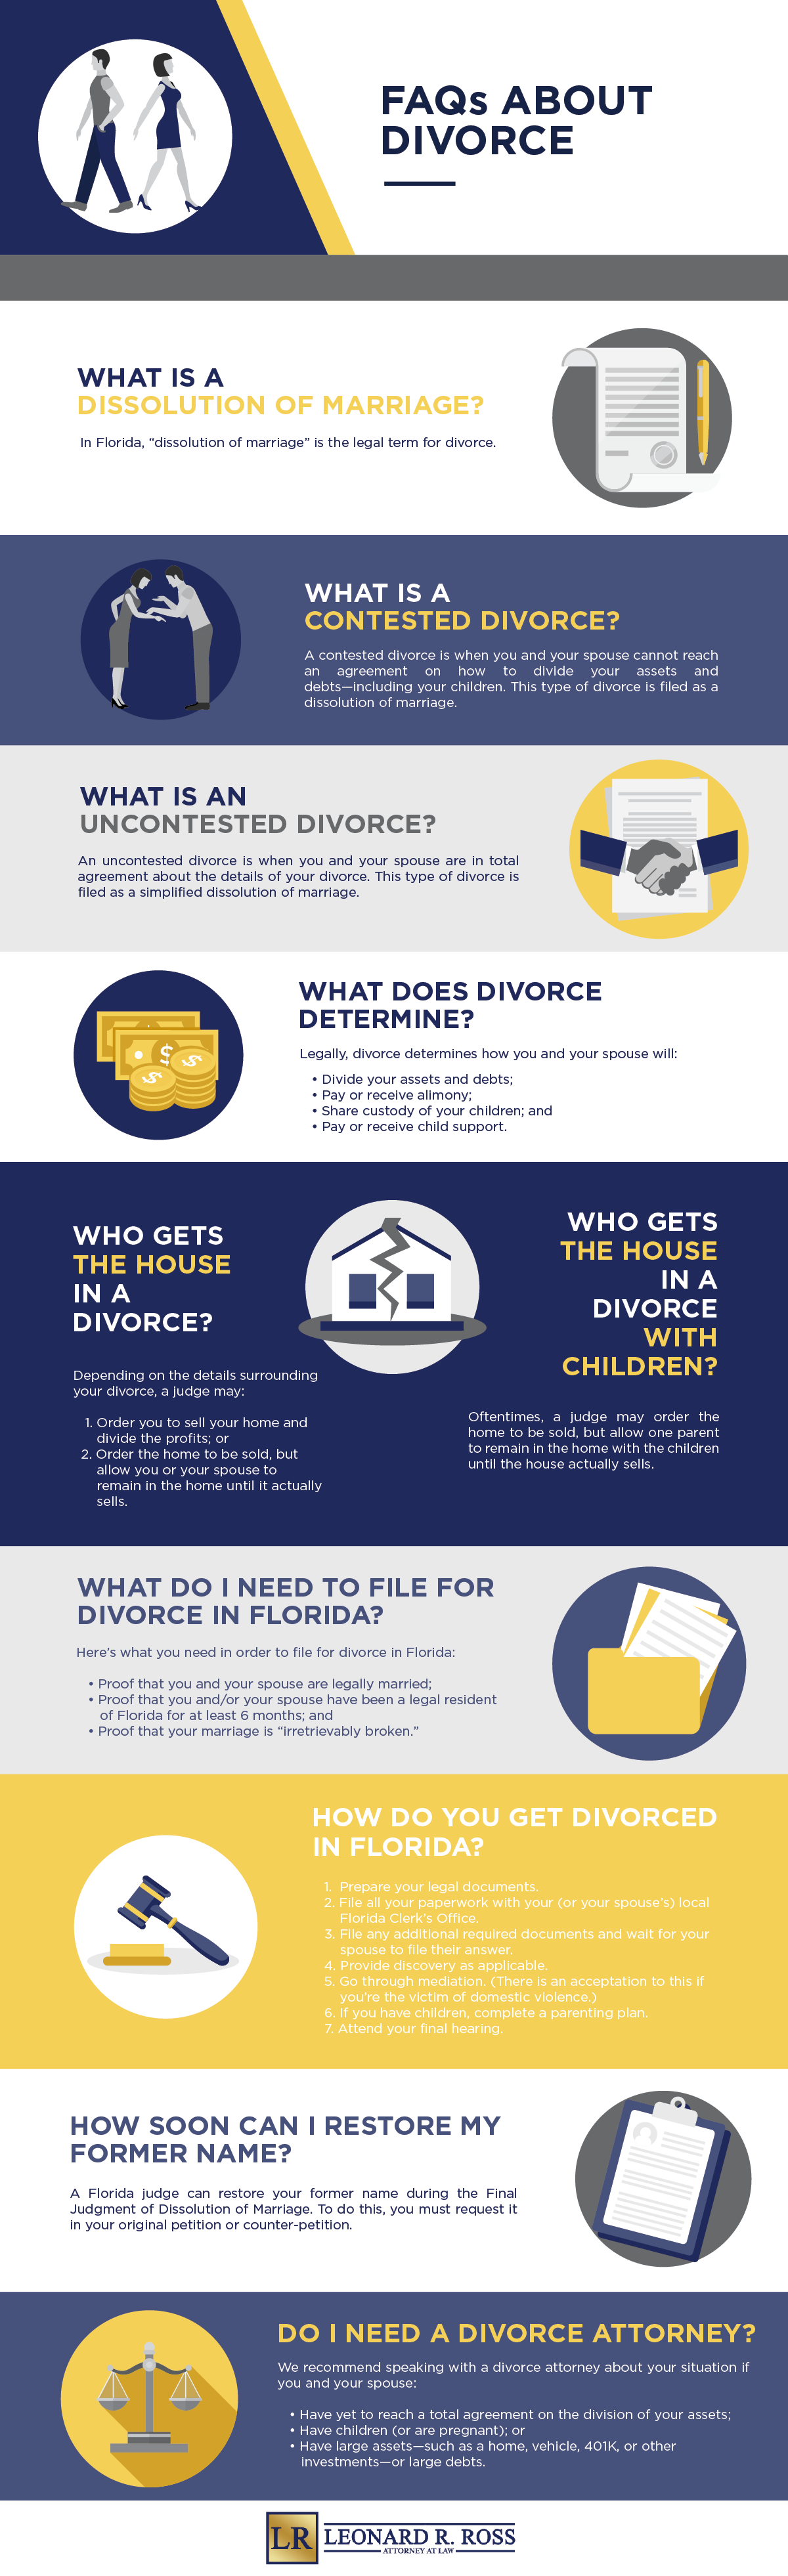 divorce faqs infographic